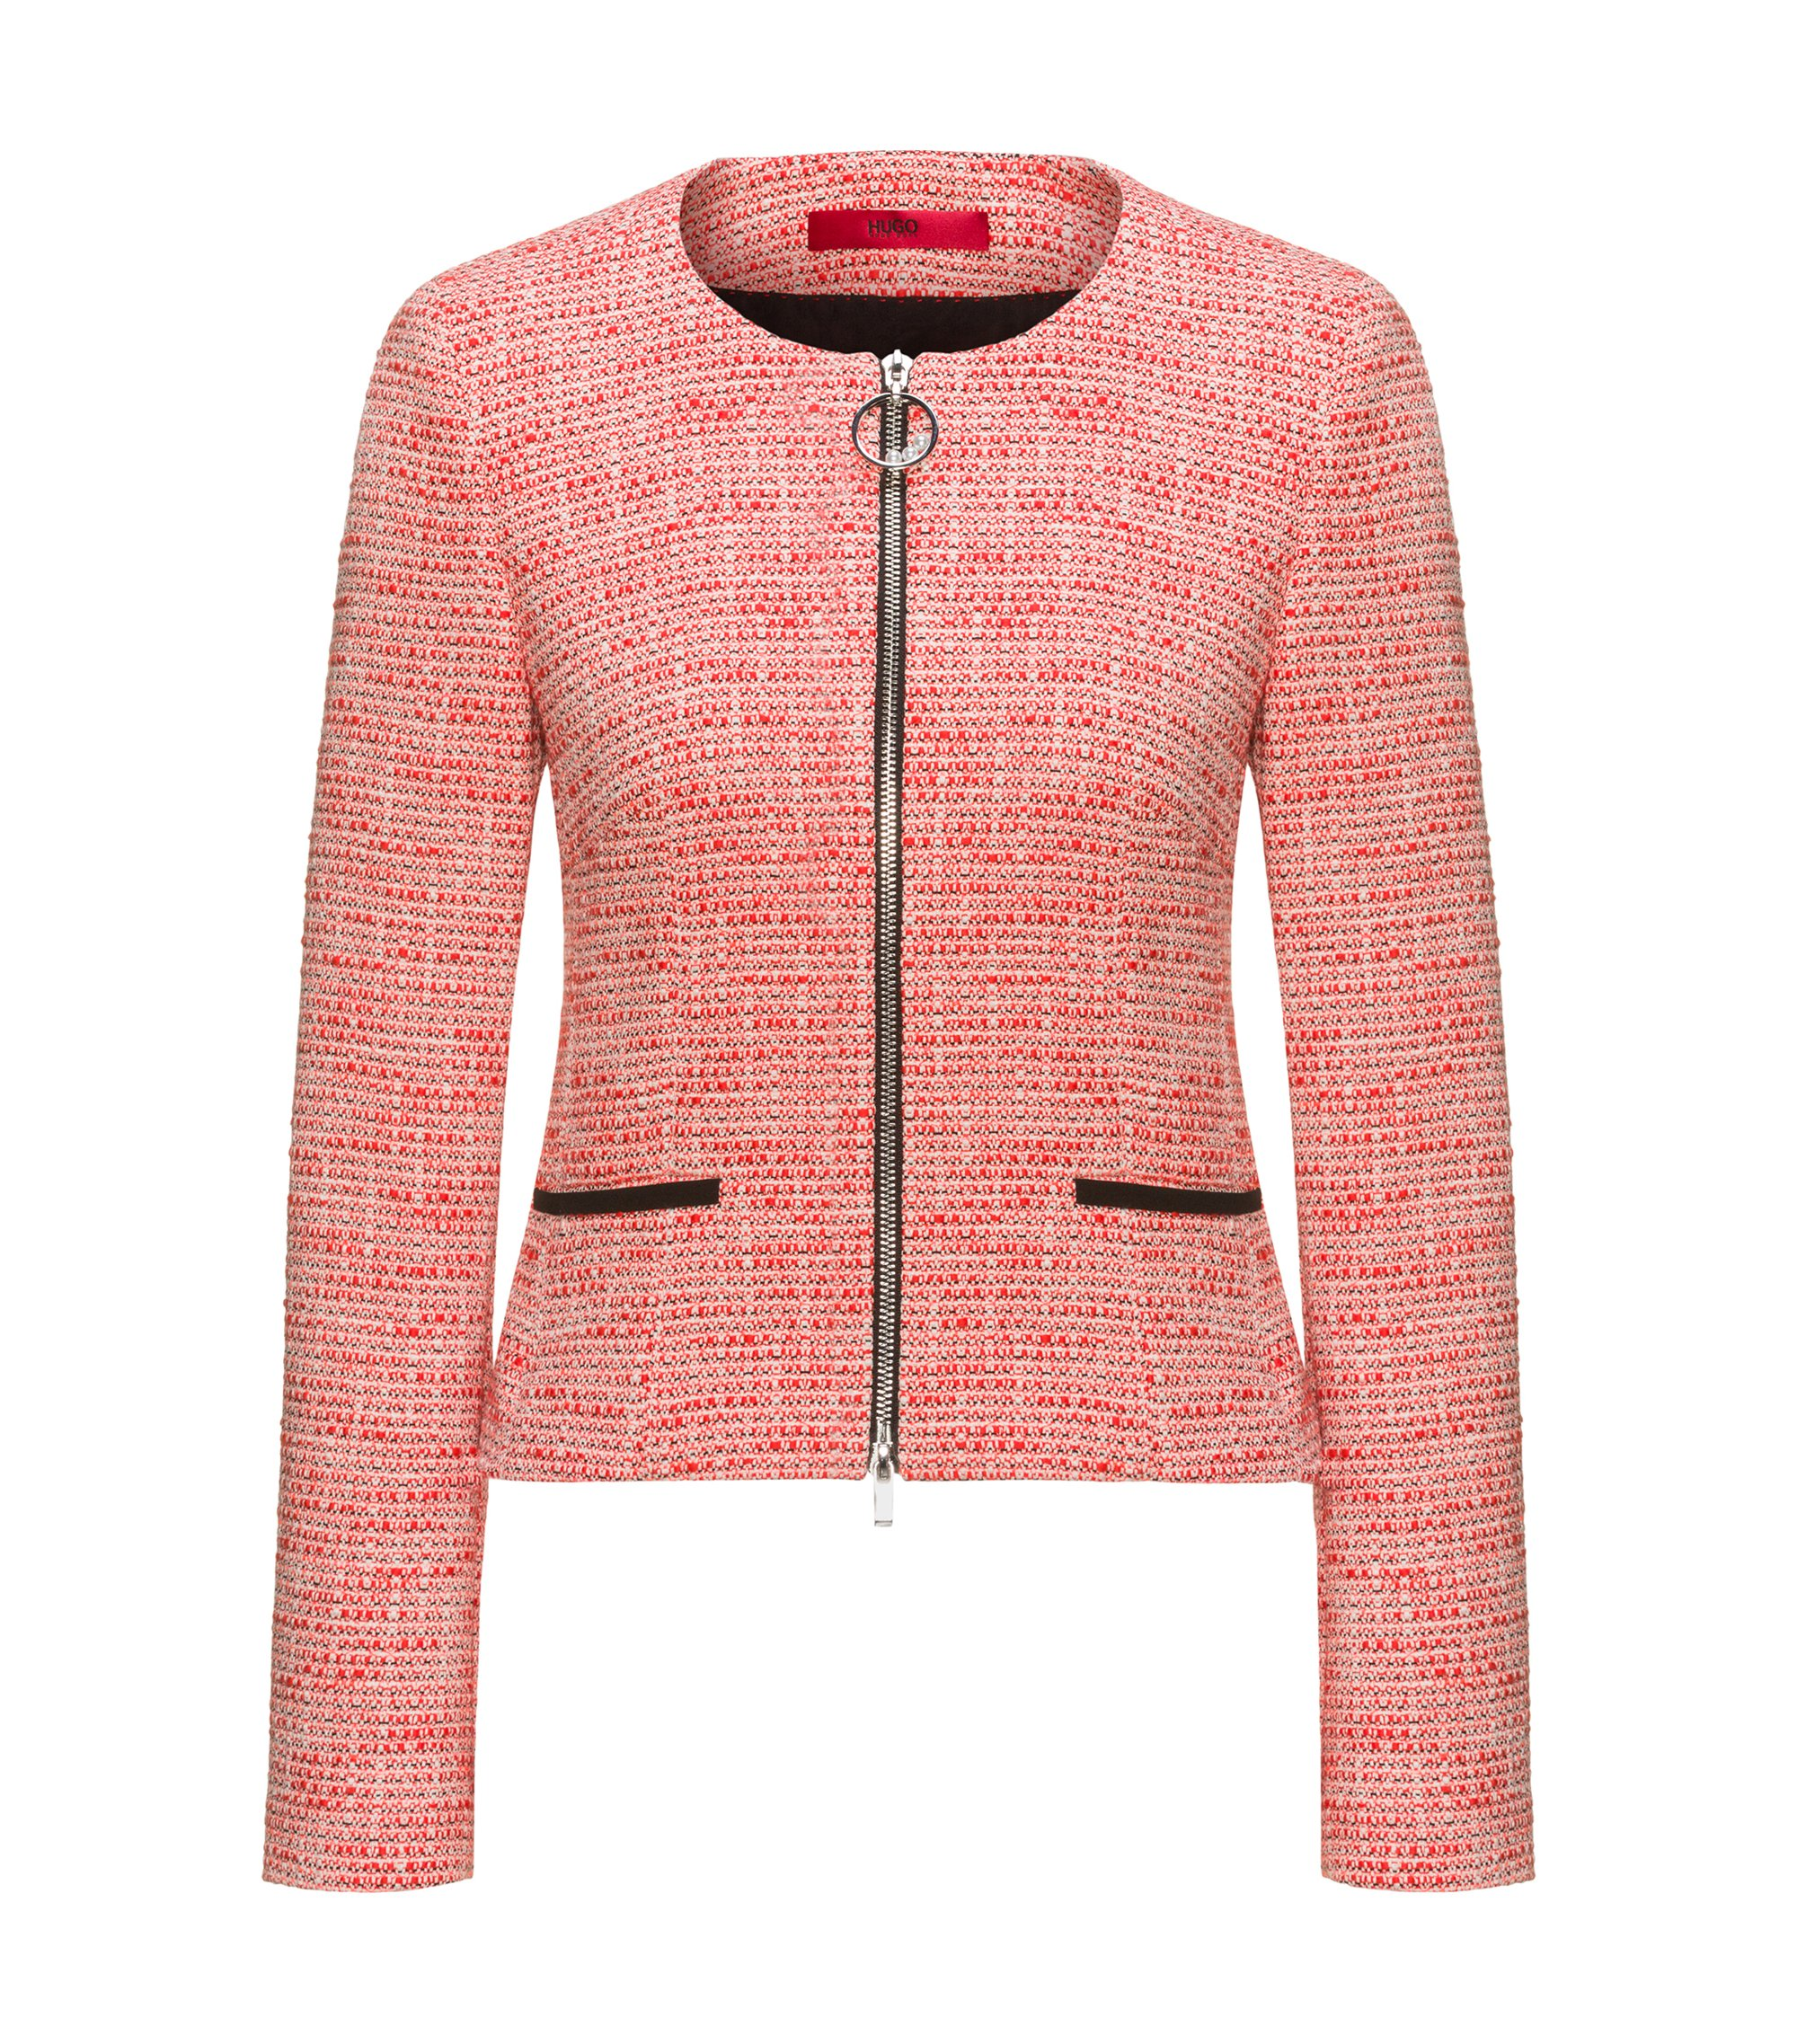 Regular-fit zip-through tweed jacket in a cotton blend, Patterned